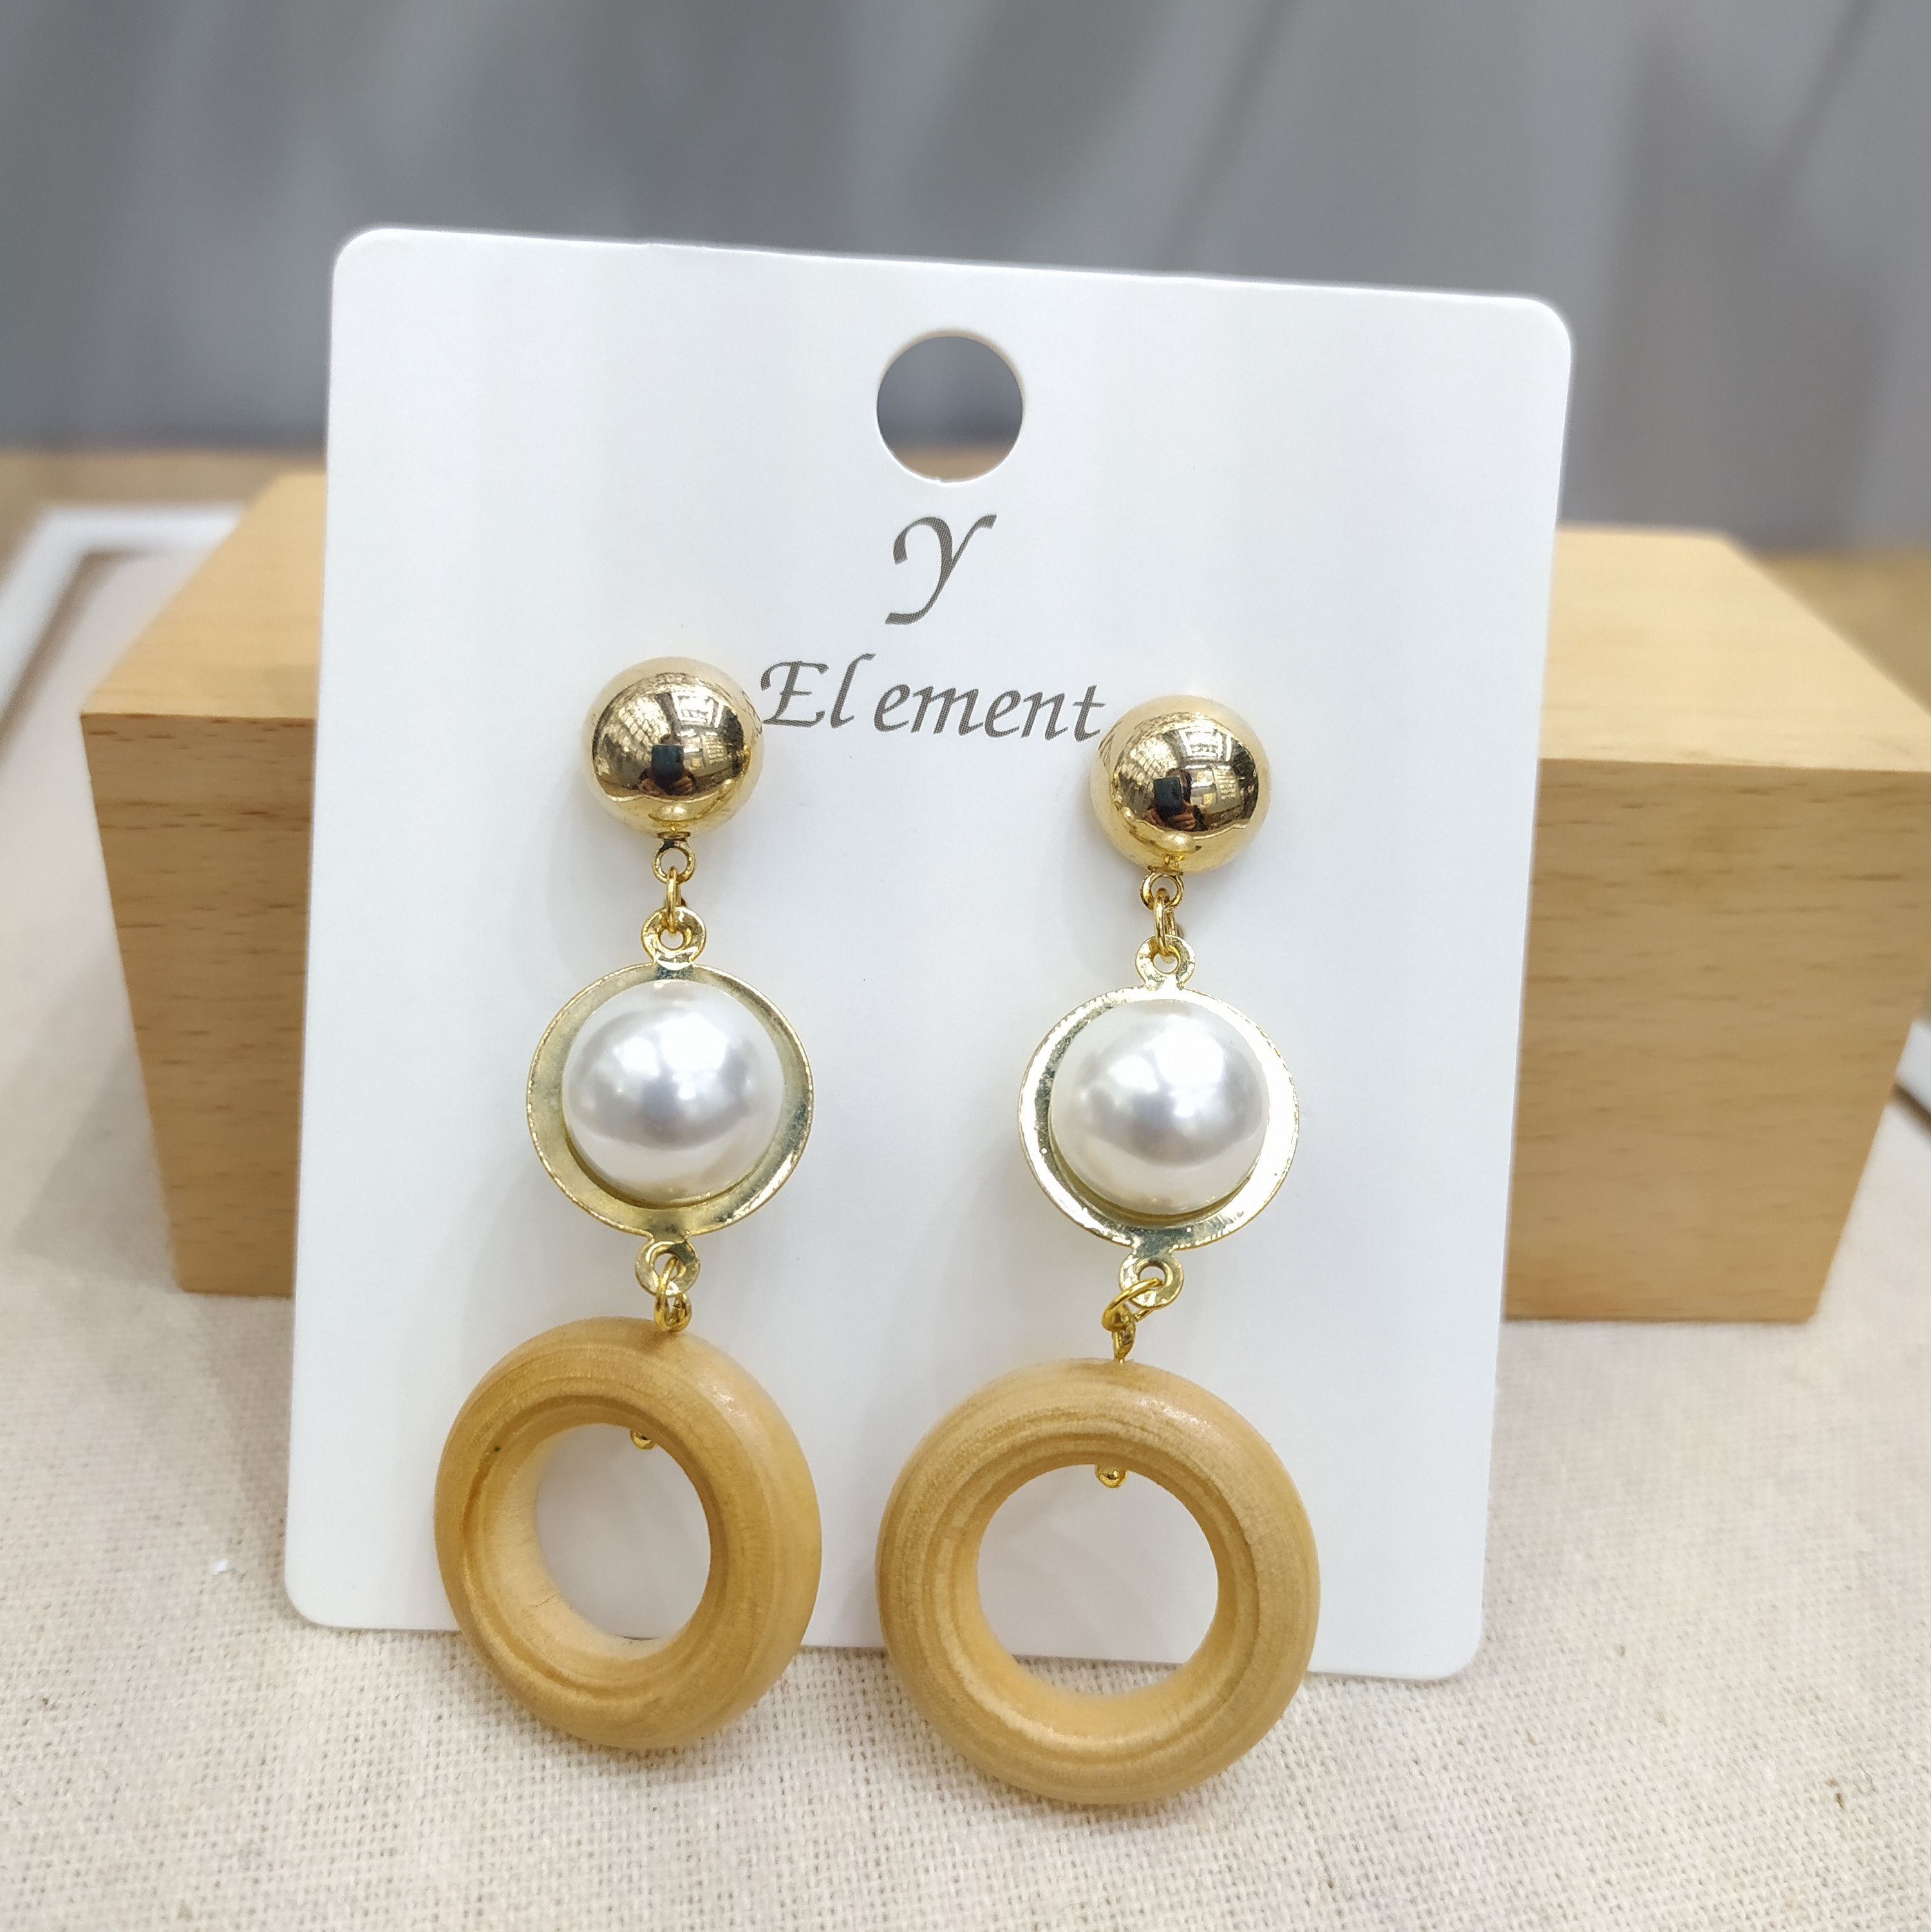 Купить с кэшбэком Y-e New Cost-effective Designed For Women Fashion Geometric Round Pearl Natural Splicing Circle  Wooden Earrings Jewelr Rushed